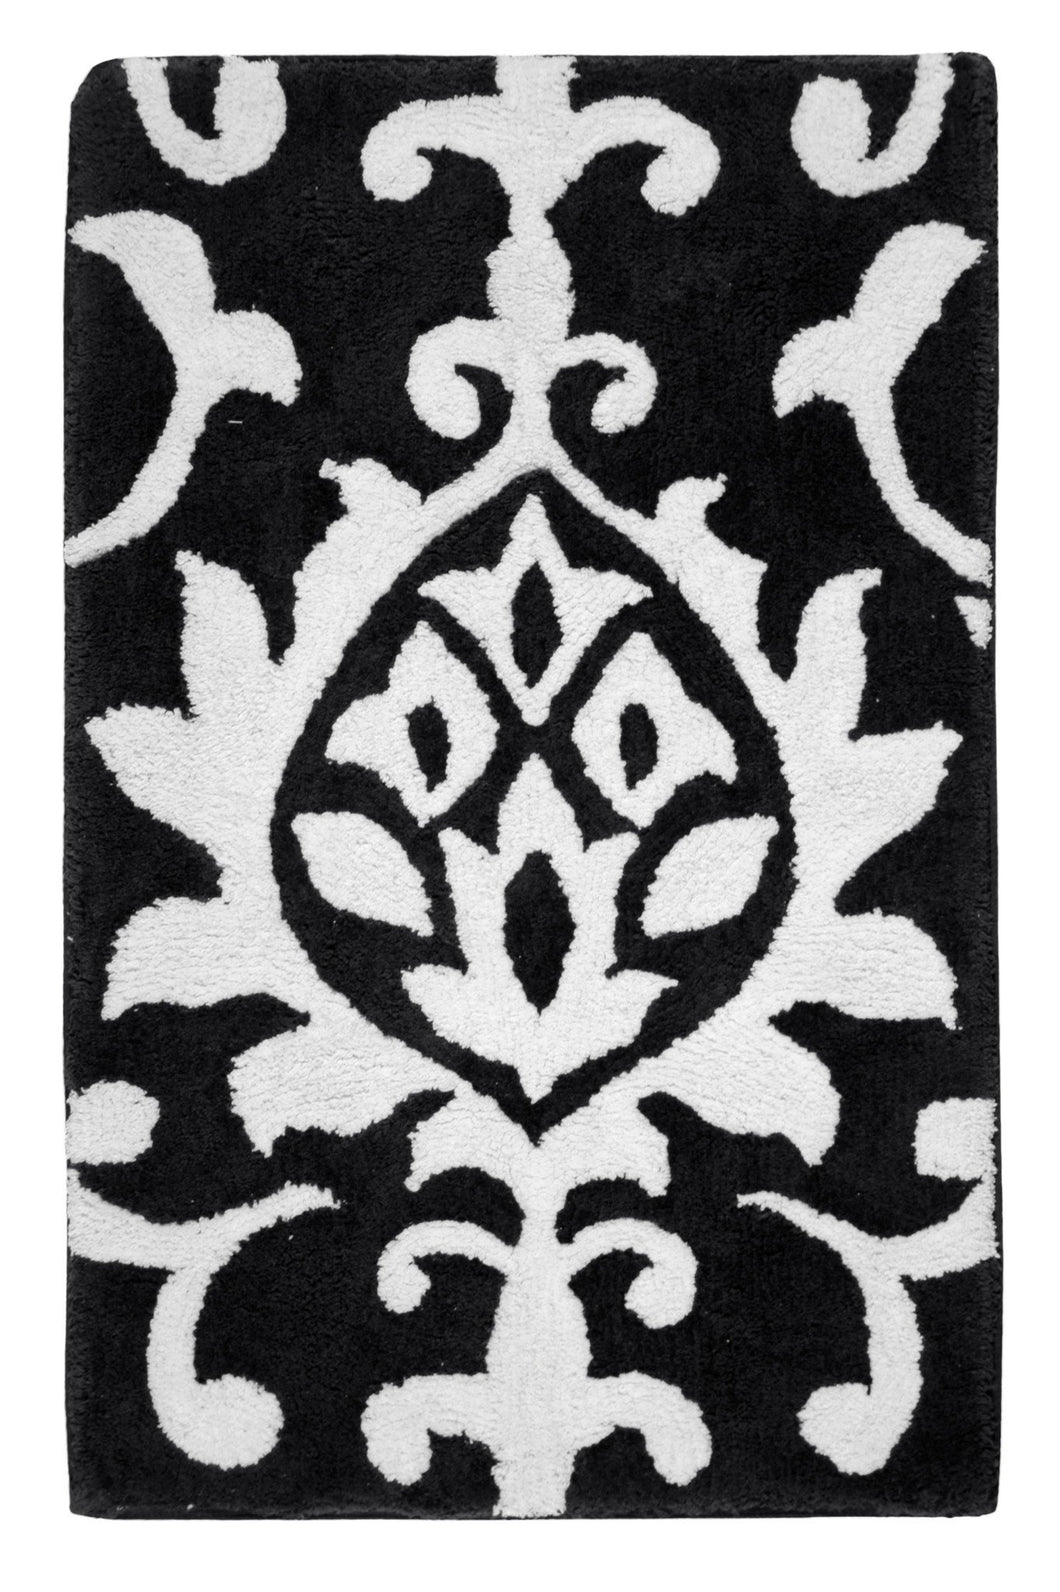 Damask Midnight Bath Carpet - Departures & Arrivals  - 1